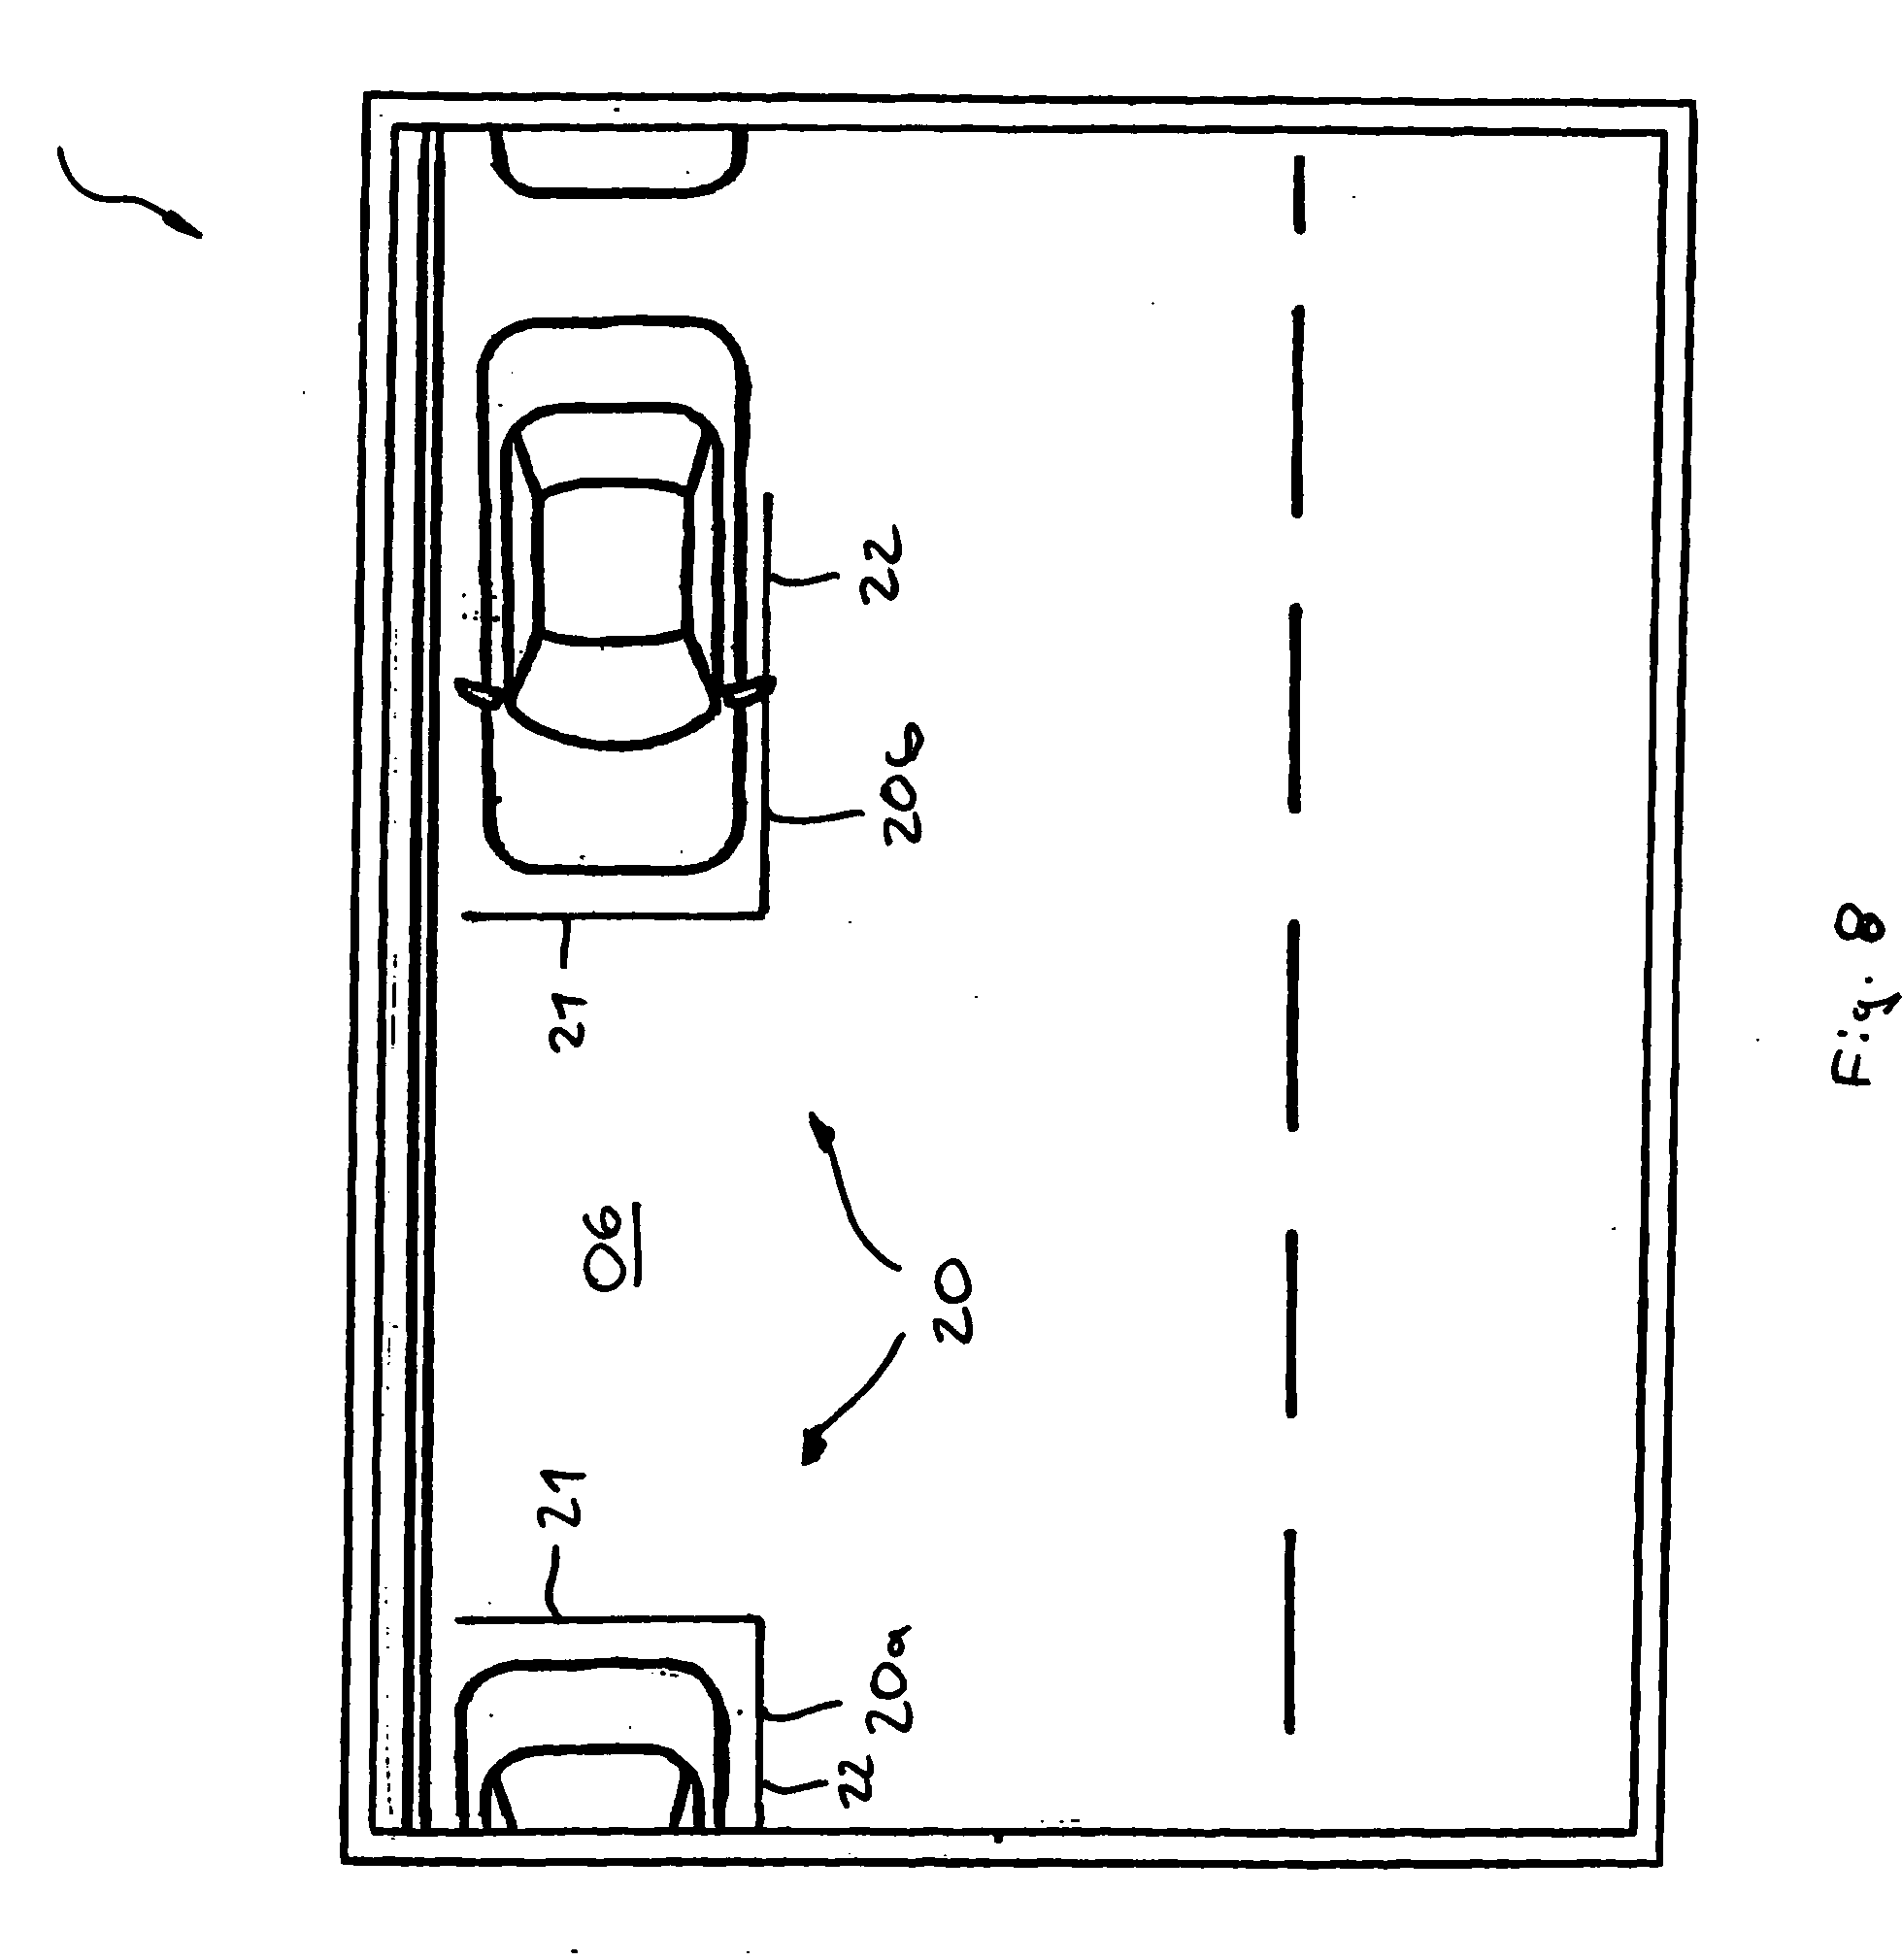 Patent Drawing  Patent US20040130464 Method of operating a display system  in a. Parallel Parking Spaces Dimensions   cpgworkflow com